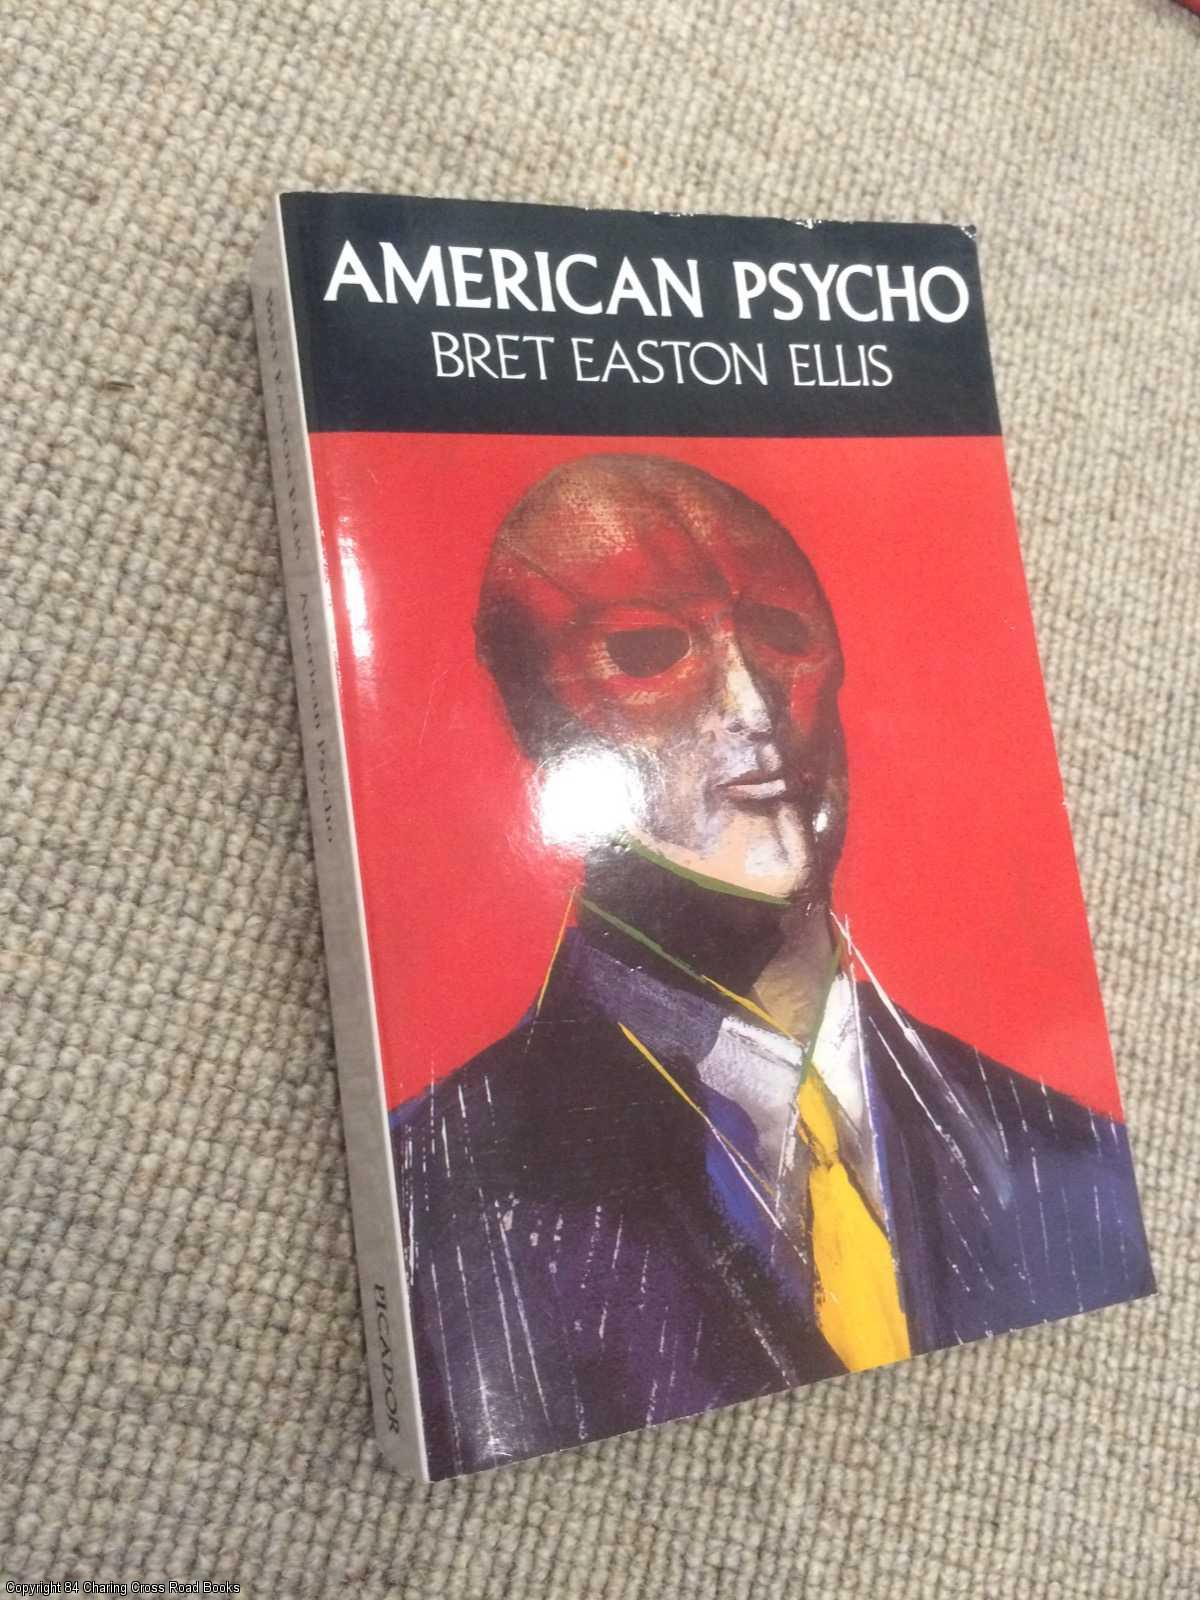 ELLIS, BRET EASTON - American Psycho